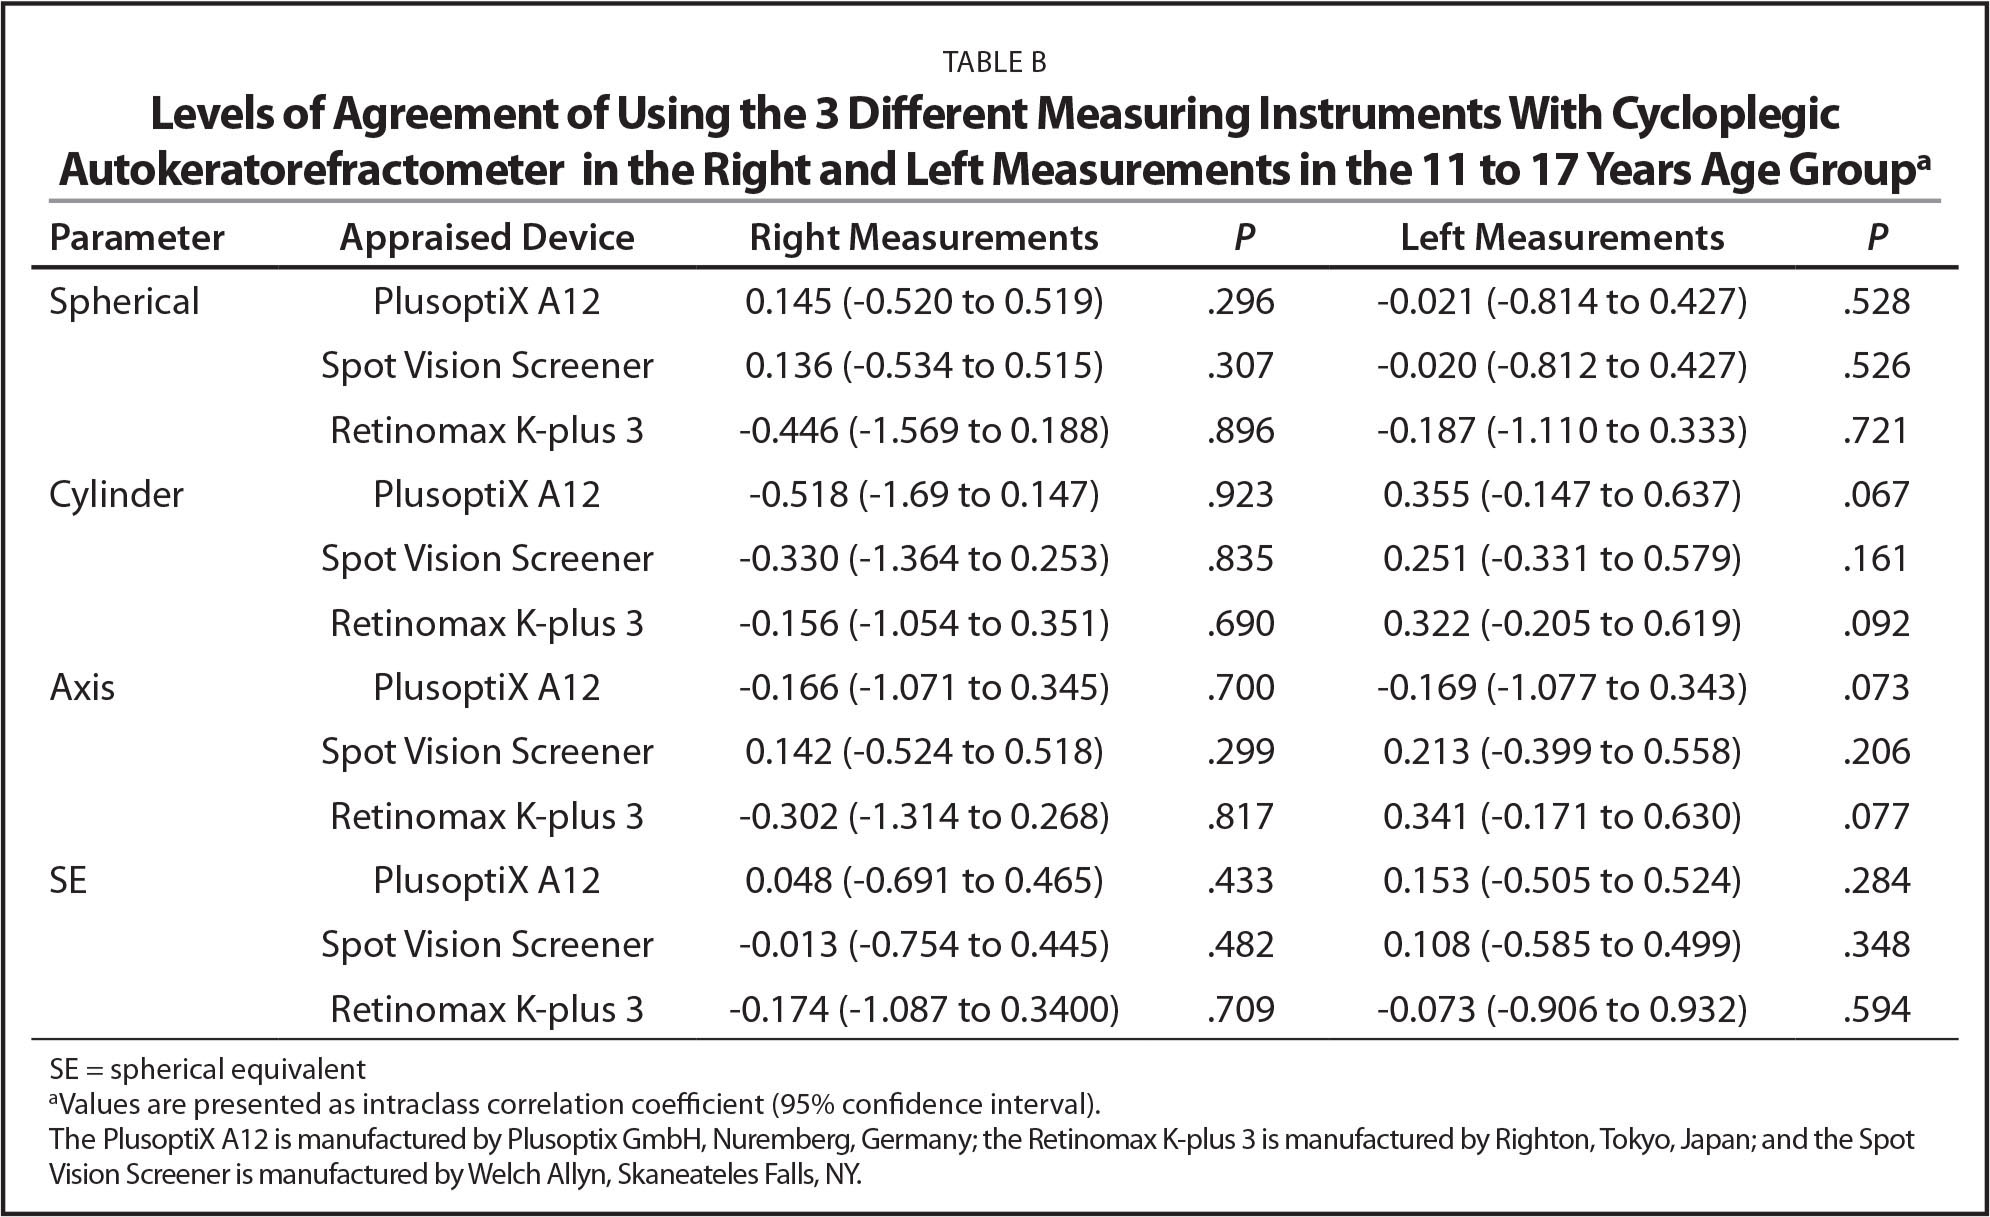 Levels of Agreement of Using the 3 Different Measuring Instruments With Cycloplegic Autokeratorefractometer in the Right and Left Measurements in the 11 to 17 Years Age Groupa